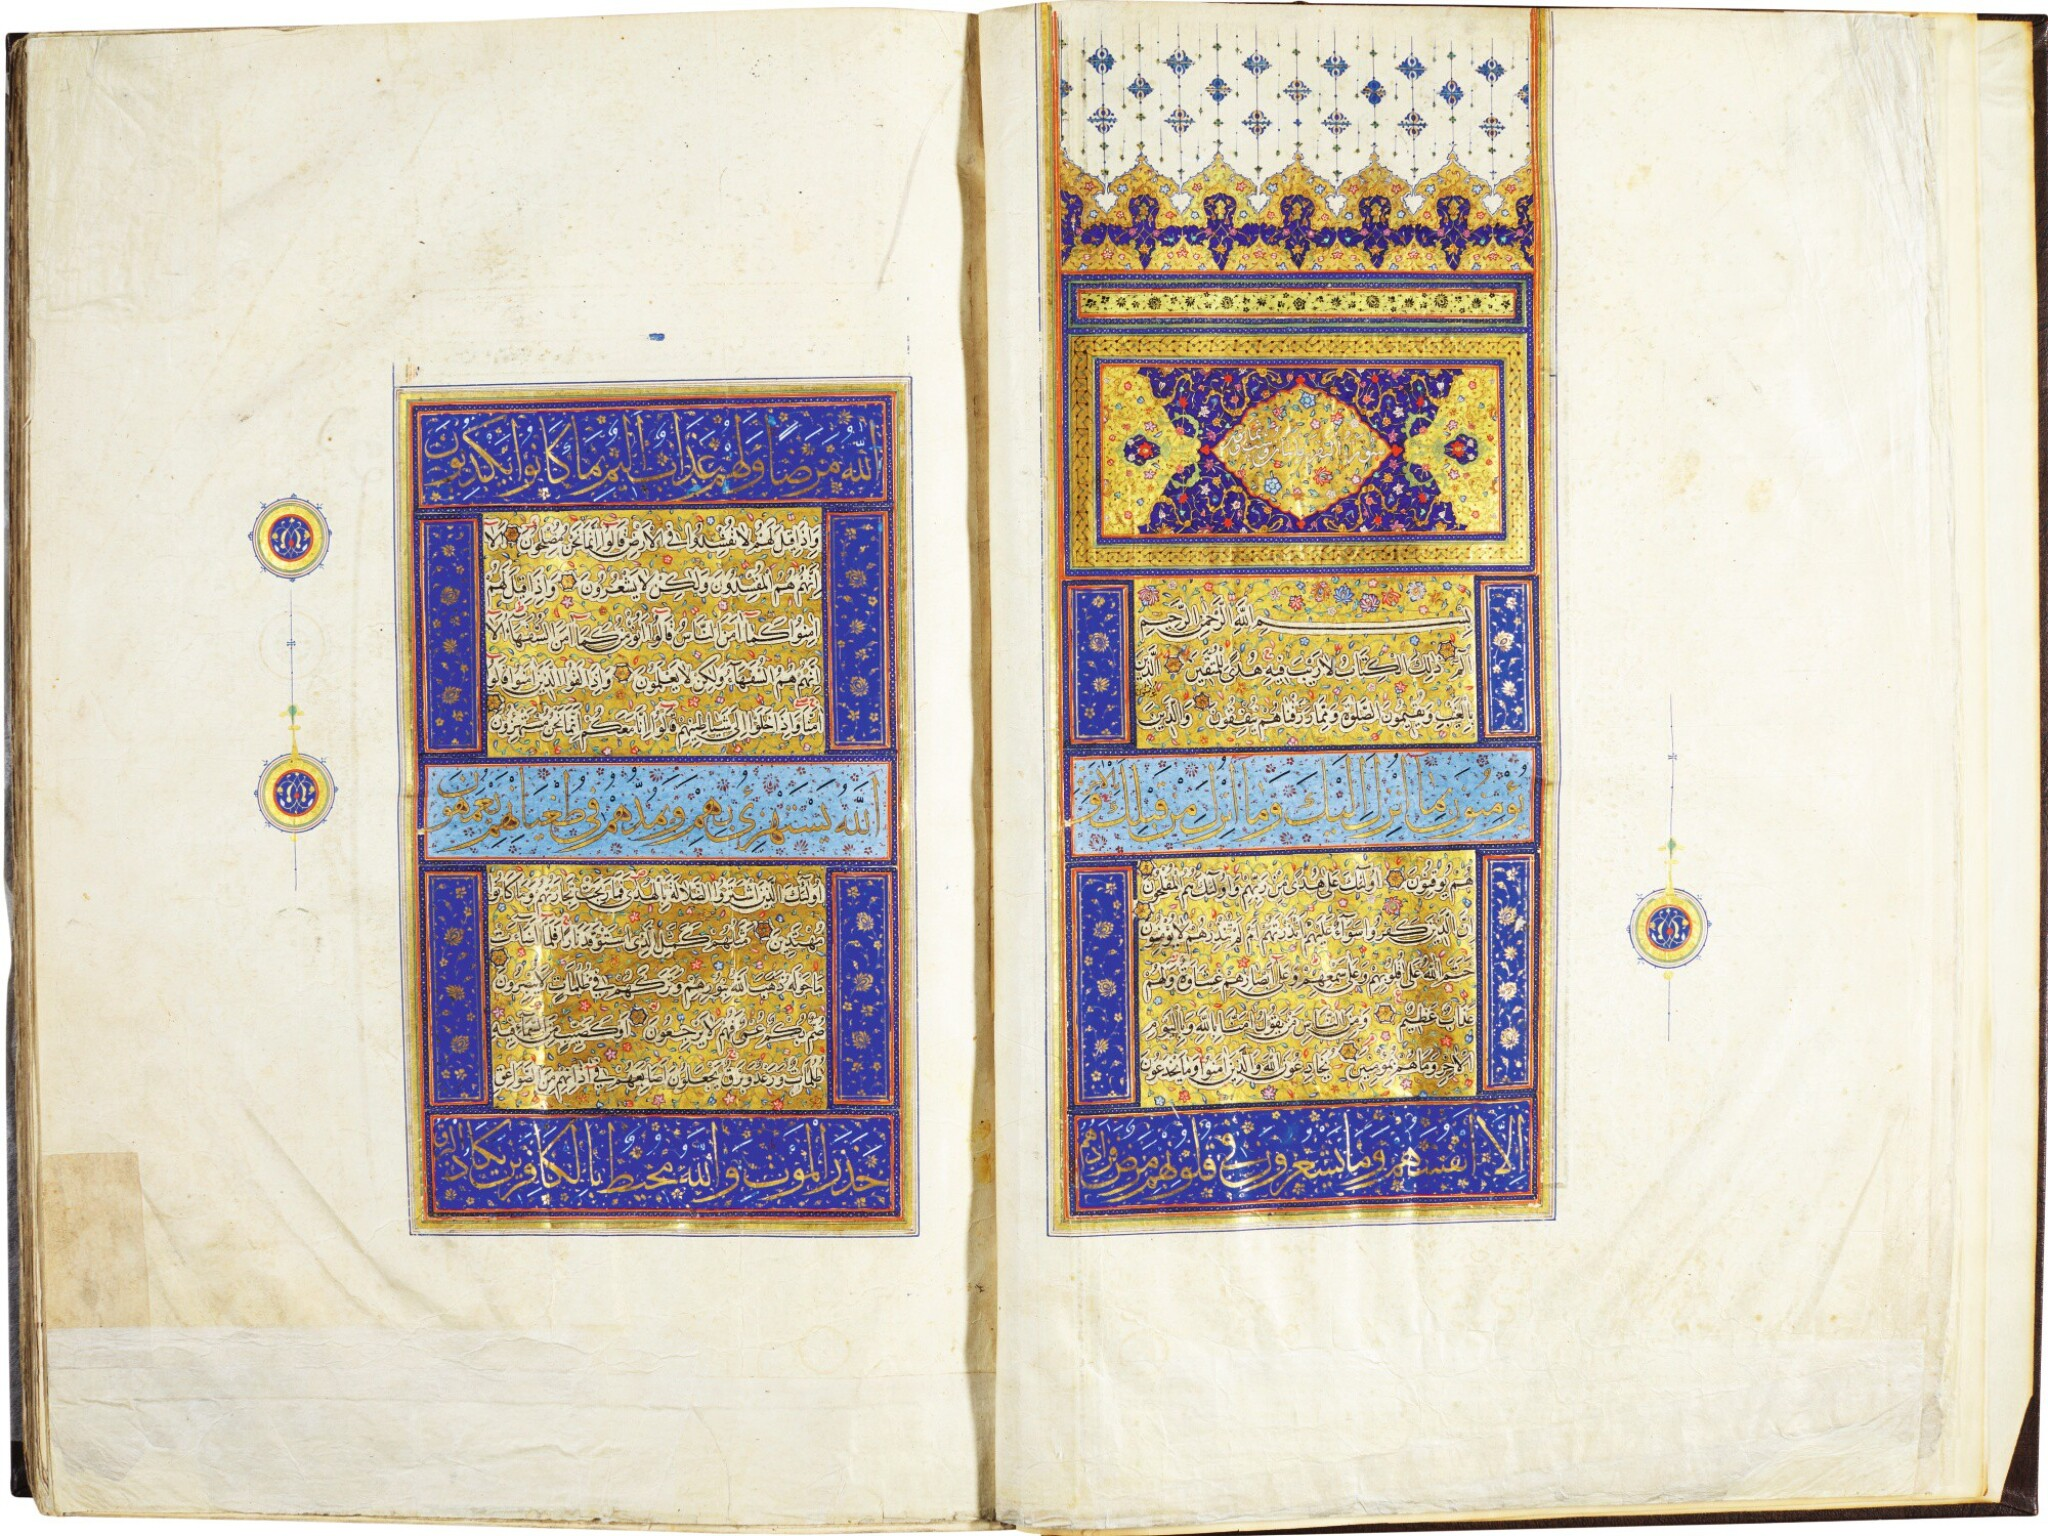 View full screen - View 1 of Lot 17. A MONUMENTAL ILLUMINATED QUR'AN, PERSIA, SAFAVID, MID-16TH CENTURY.